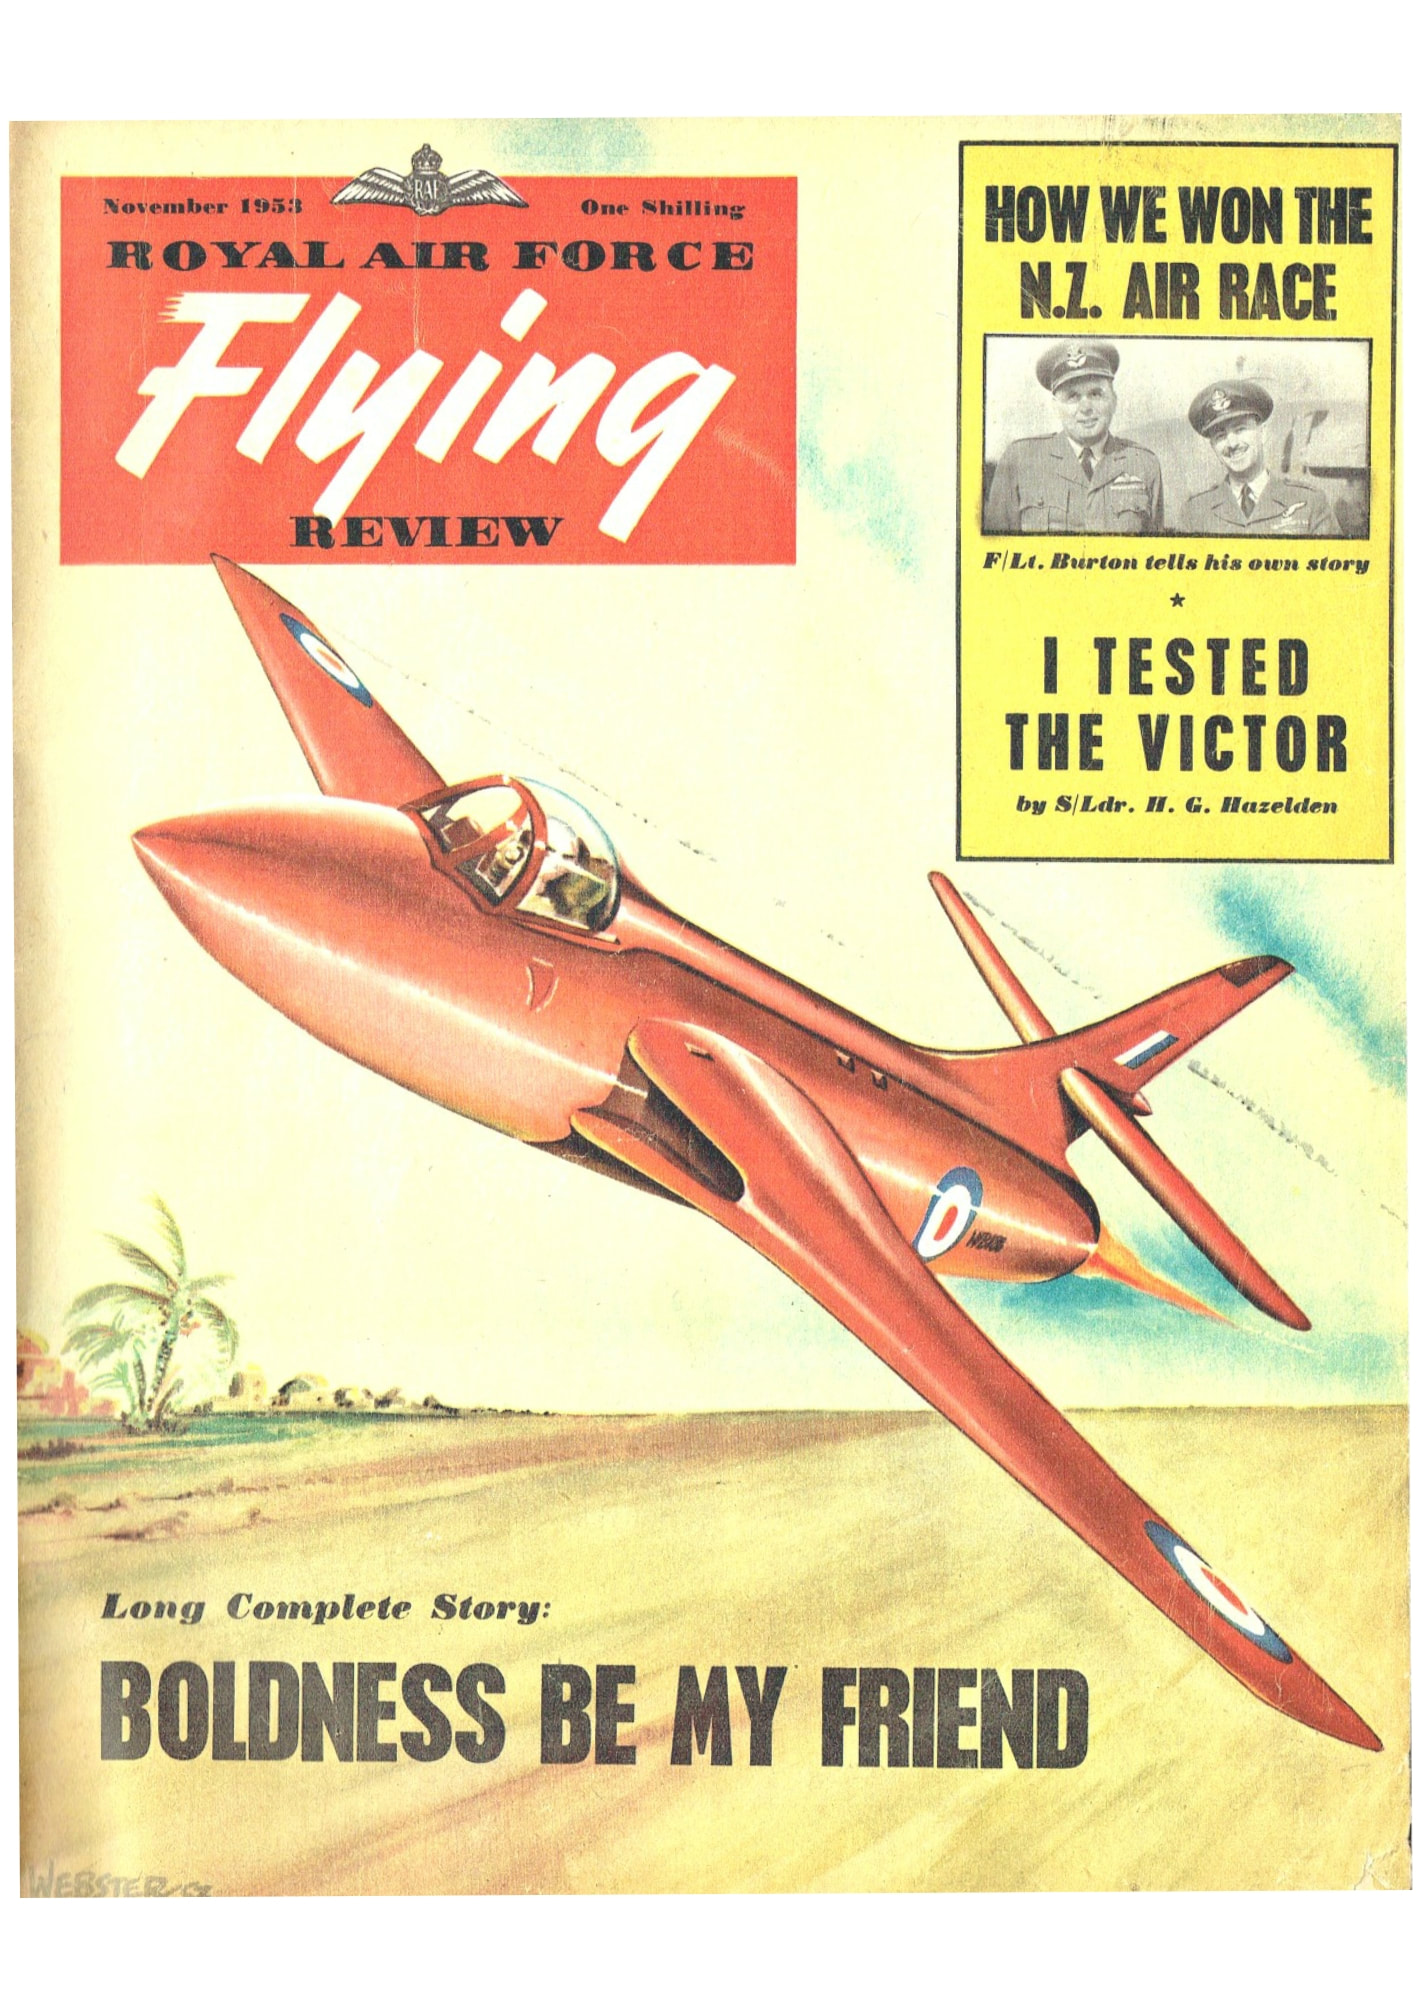 RAF FLYING REVIEW NOVEMBER 1953: VICTOR FLIGHT-TEST/ DOUGLAS SKYRAY/ SAAB  F13/ 3 YEARS IN A RED CELL/ RICHARD PAPE STORY/ US PARASITE PLANES